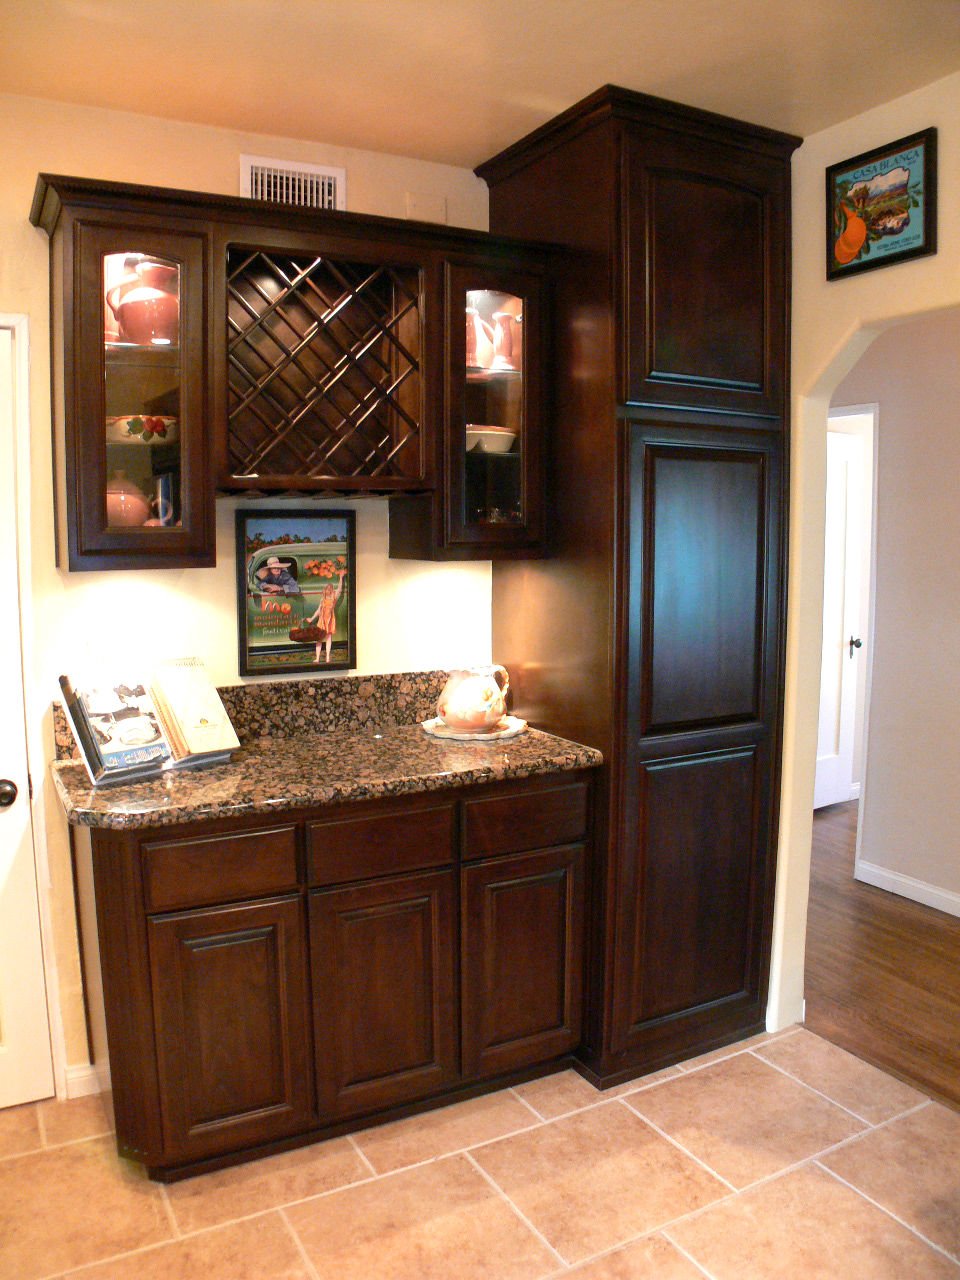 Built In Wine Rack And Glass Fronted Cabinets To Display Your Heirloom